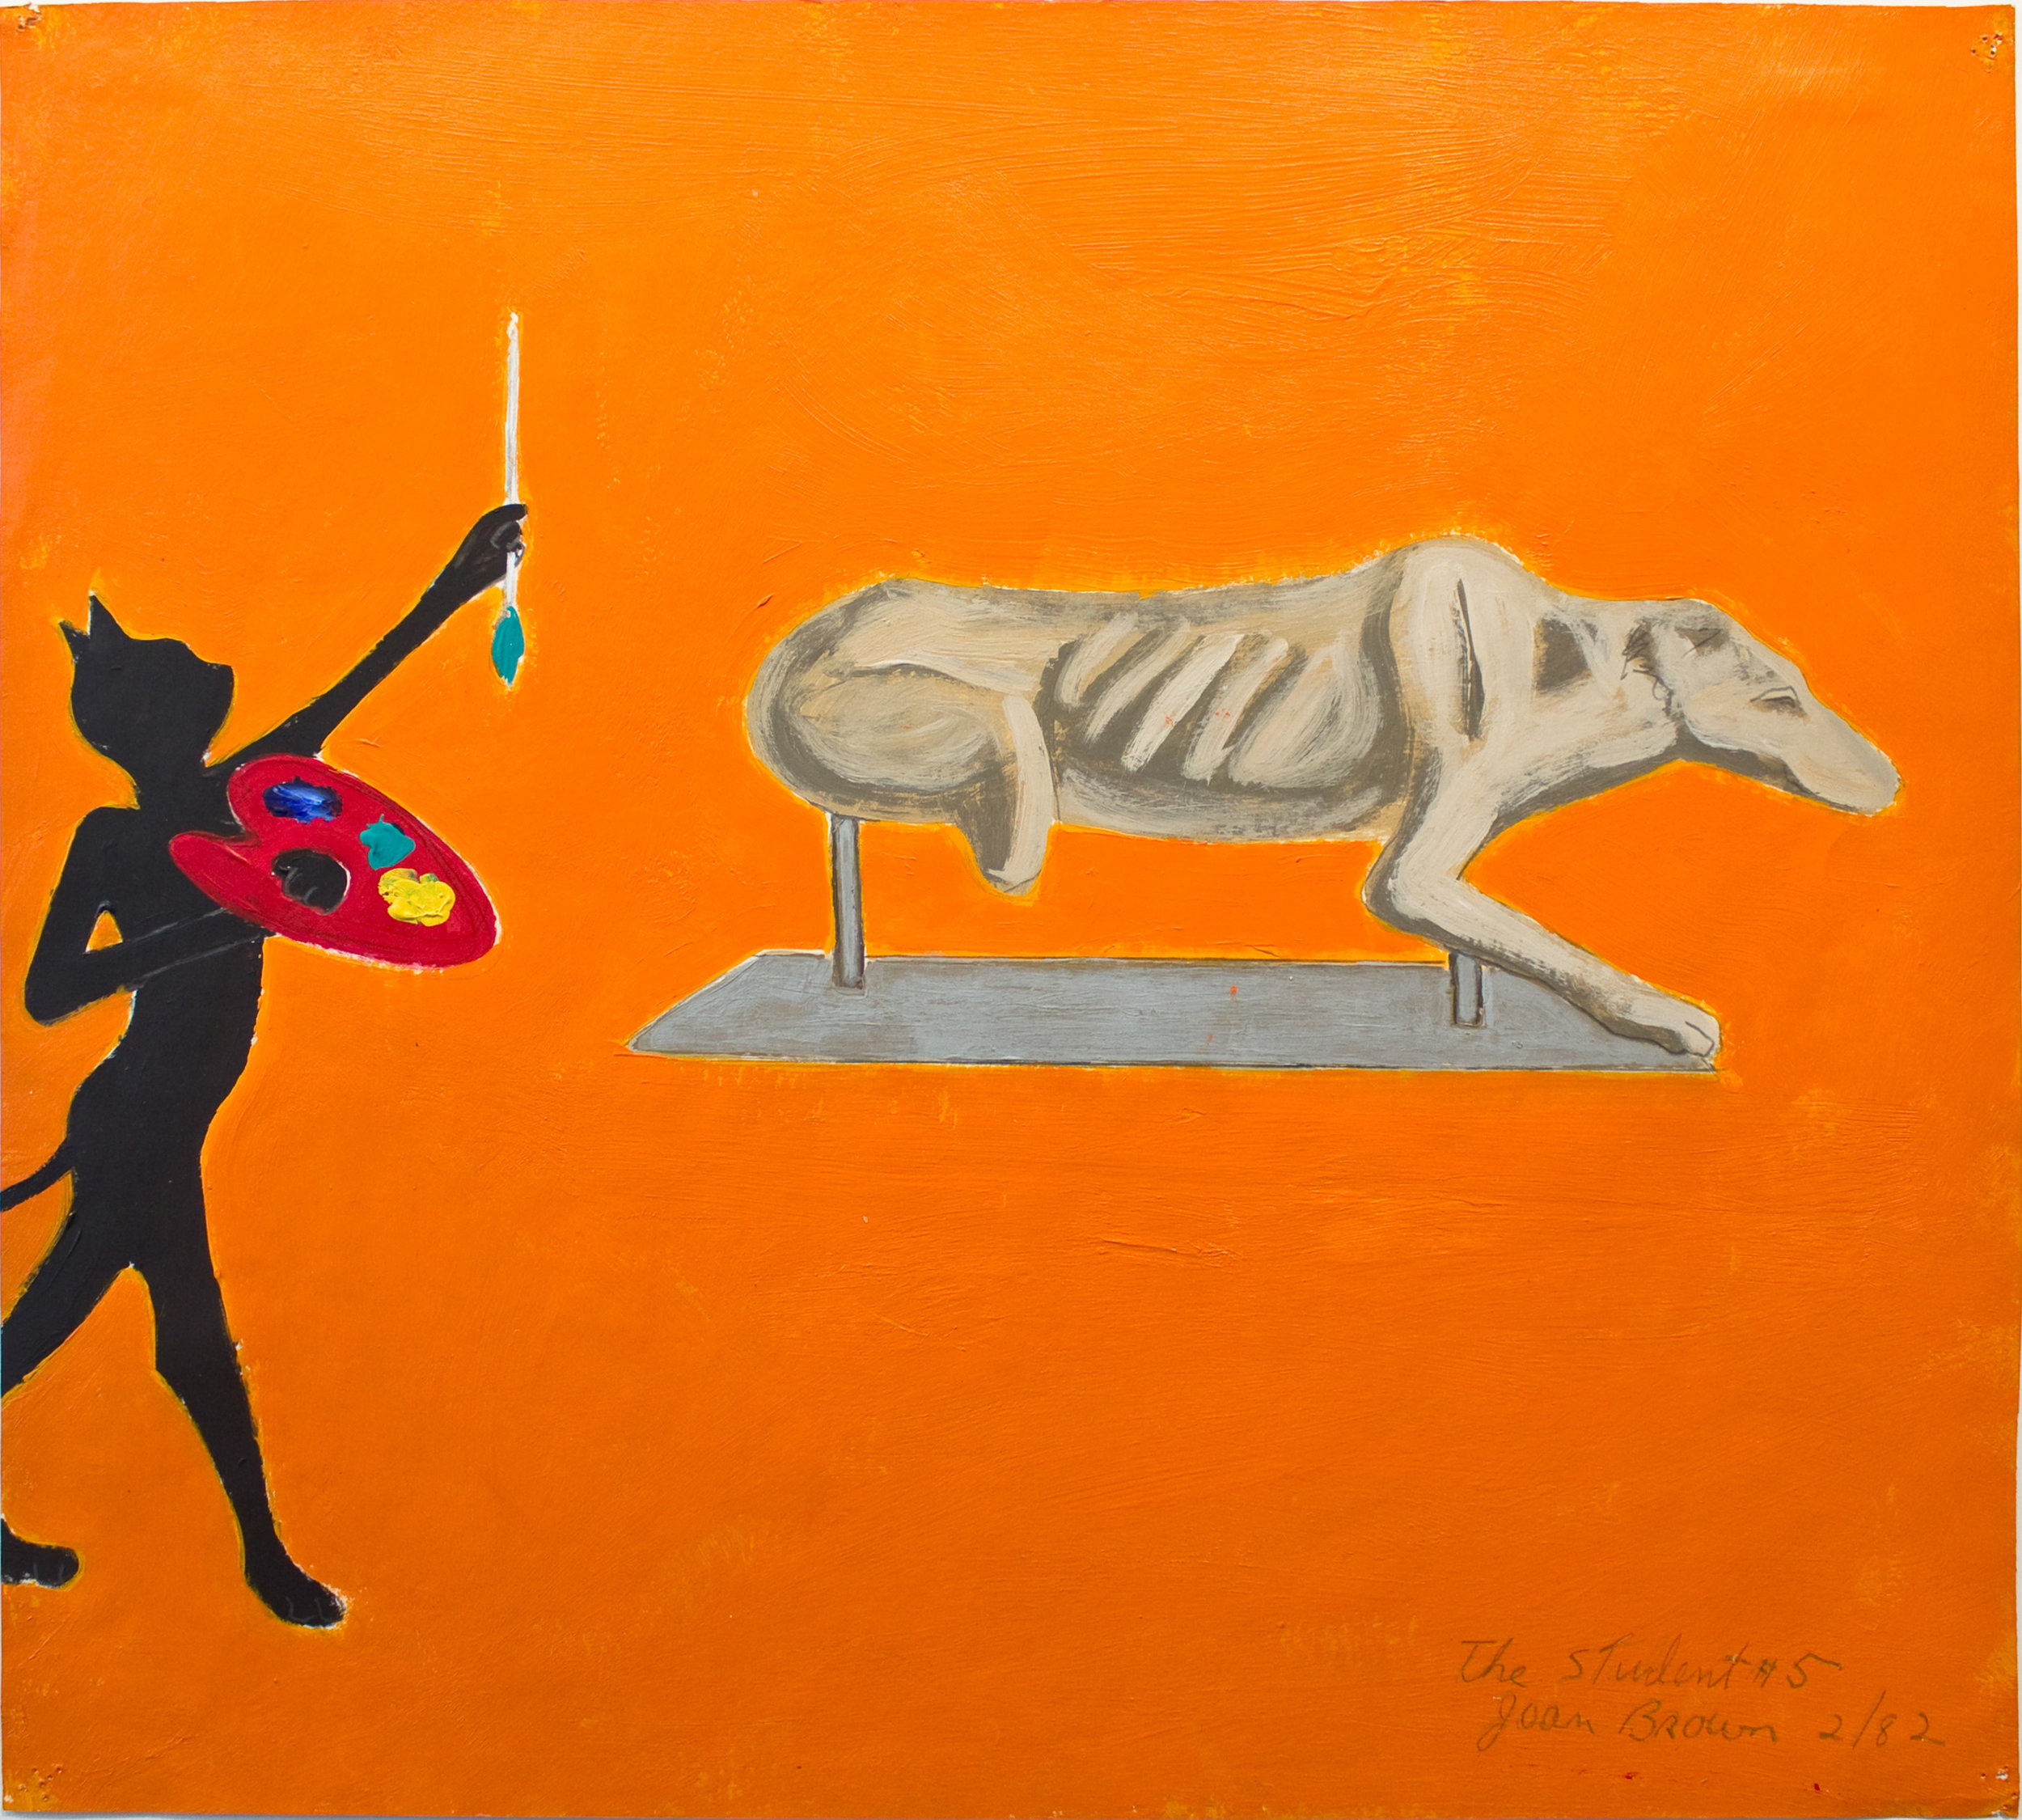 Joan Brown, The Student #5, 1982, Acrylic on paper, Suite of 8 drawings, 18 x 20 inches. © The Joan Brown Estate.